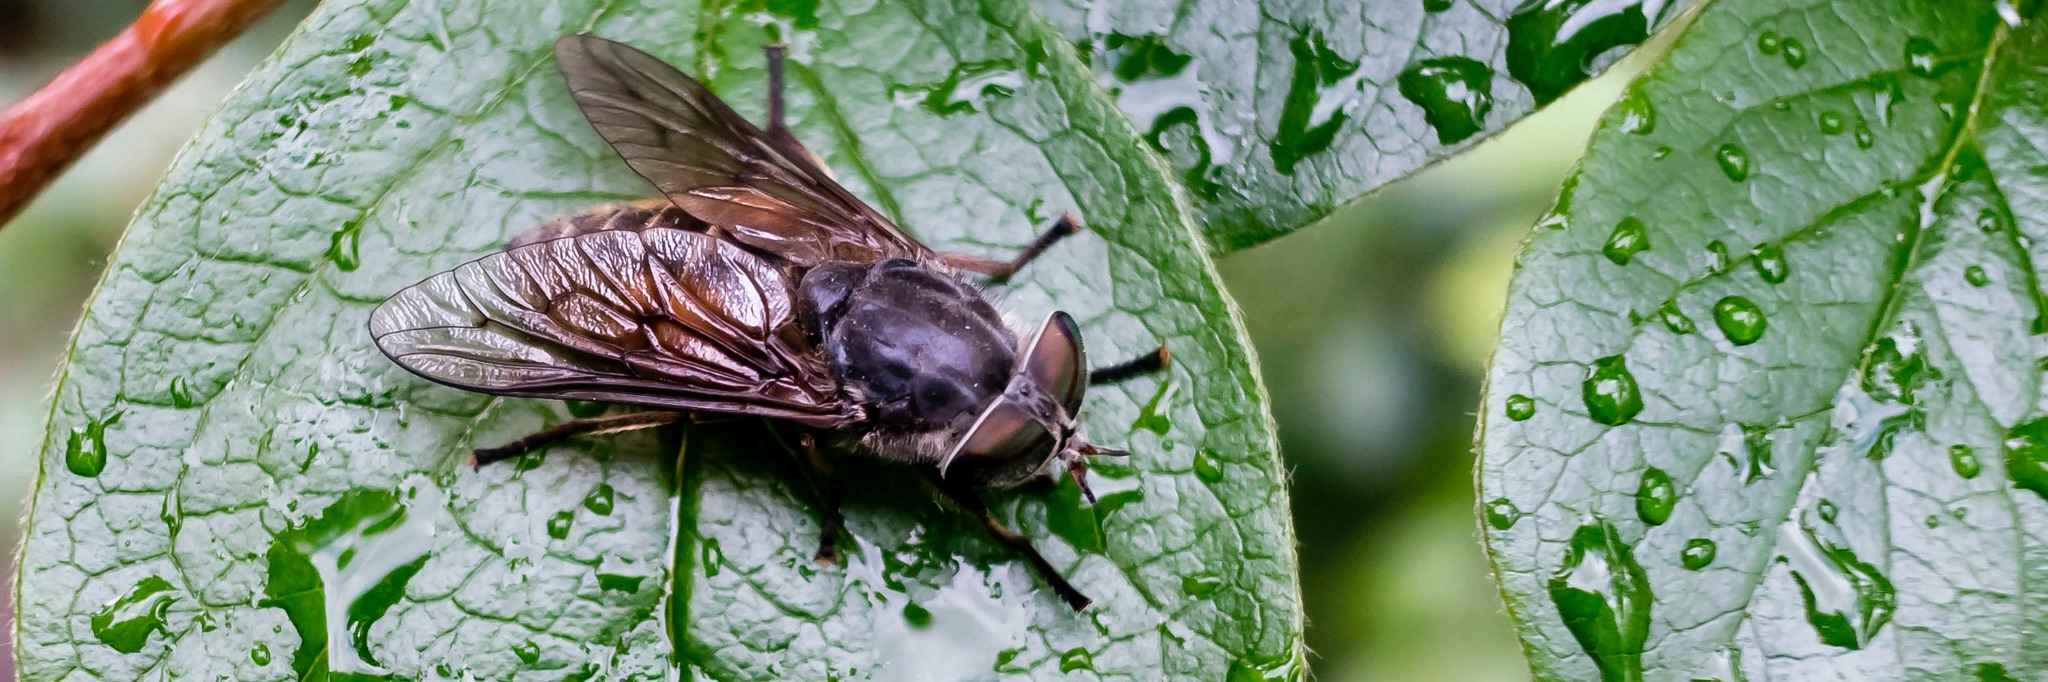 How to Keep Horse Flies Away from Your Yard